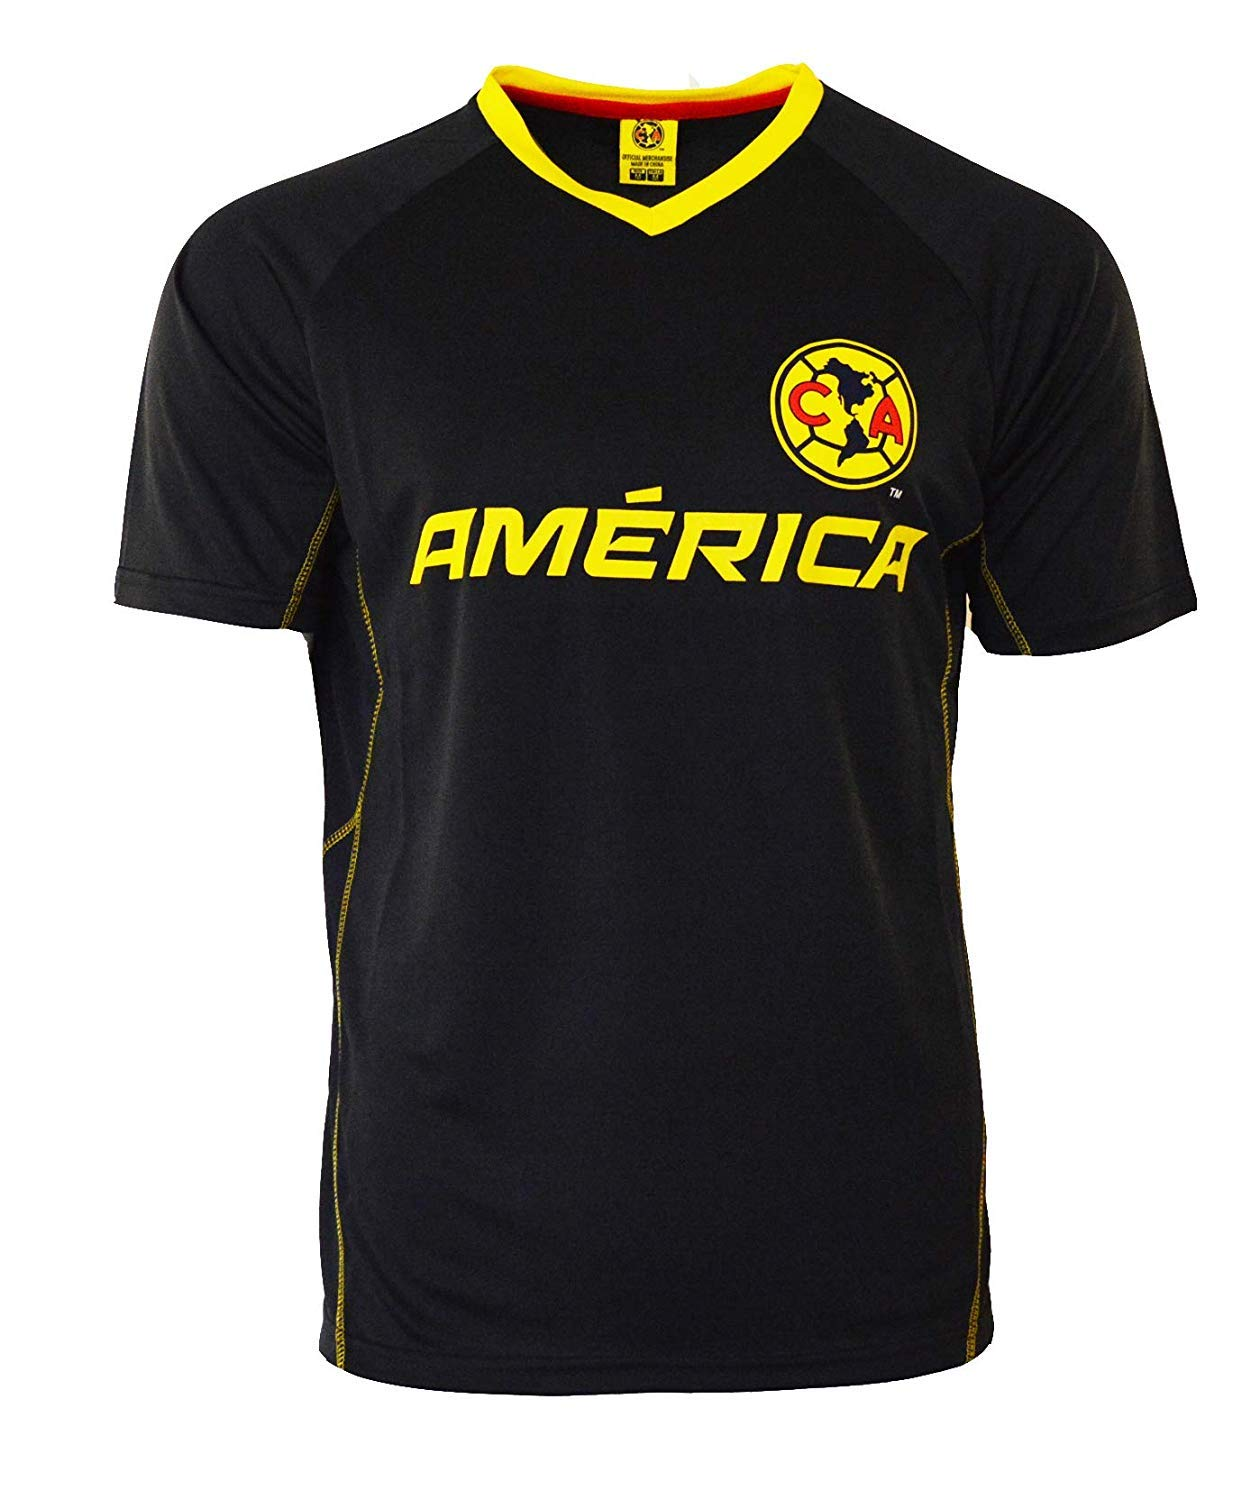 8d9ae0e70d5 Amazon.com   Icon Sport Club America Soccer Jersey Mexico FMF Adult  Training Custom Name and Number   Clothing